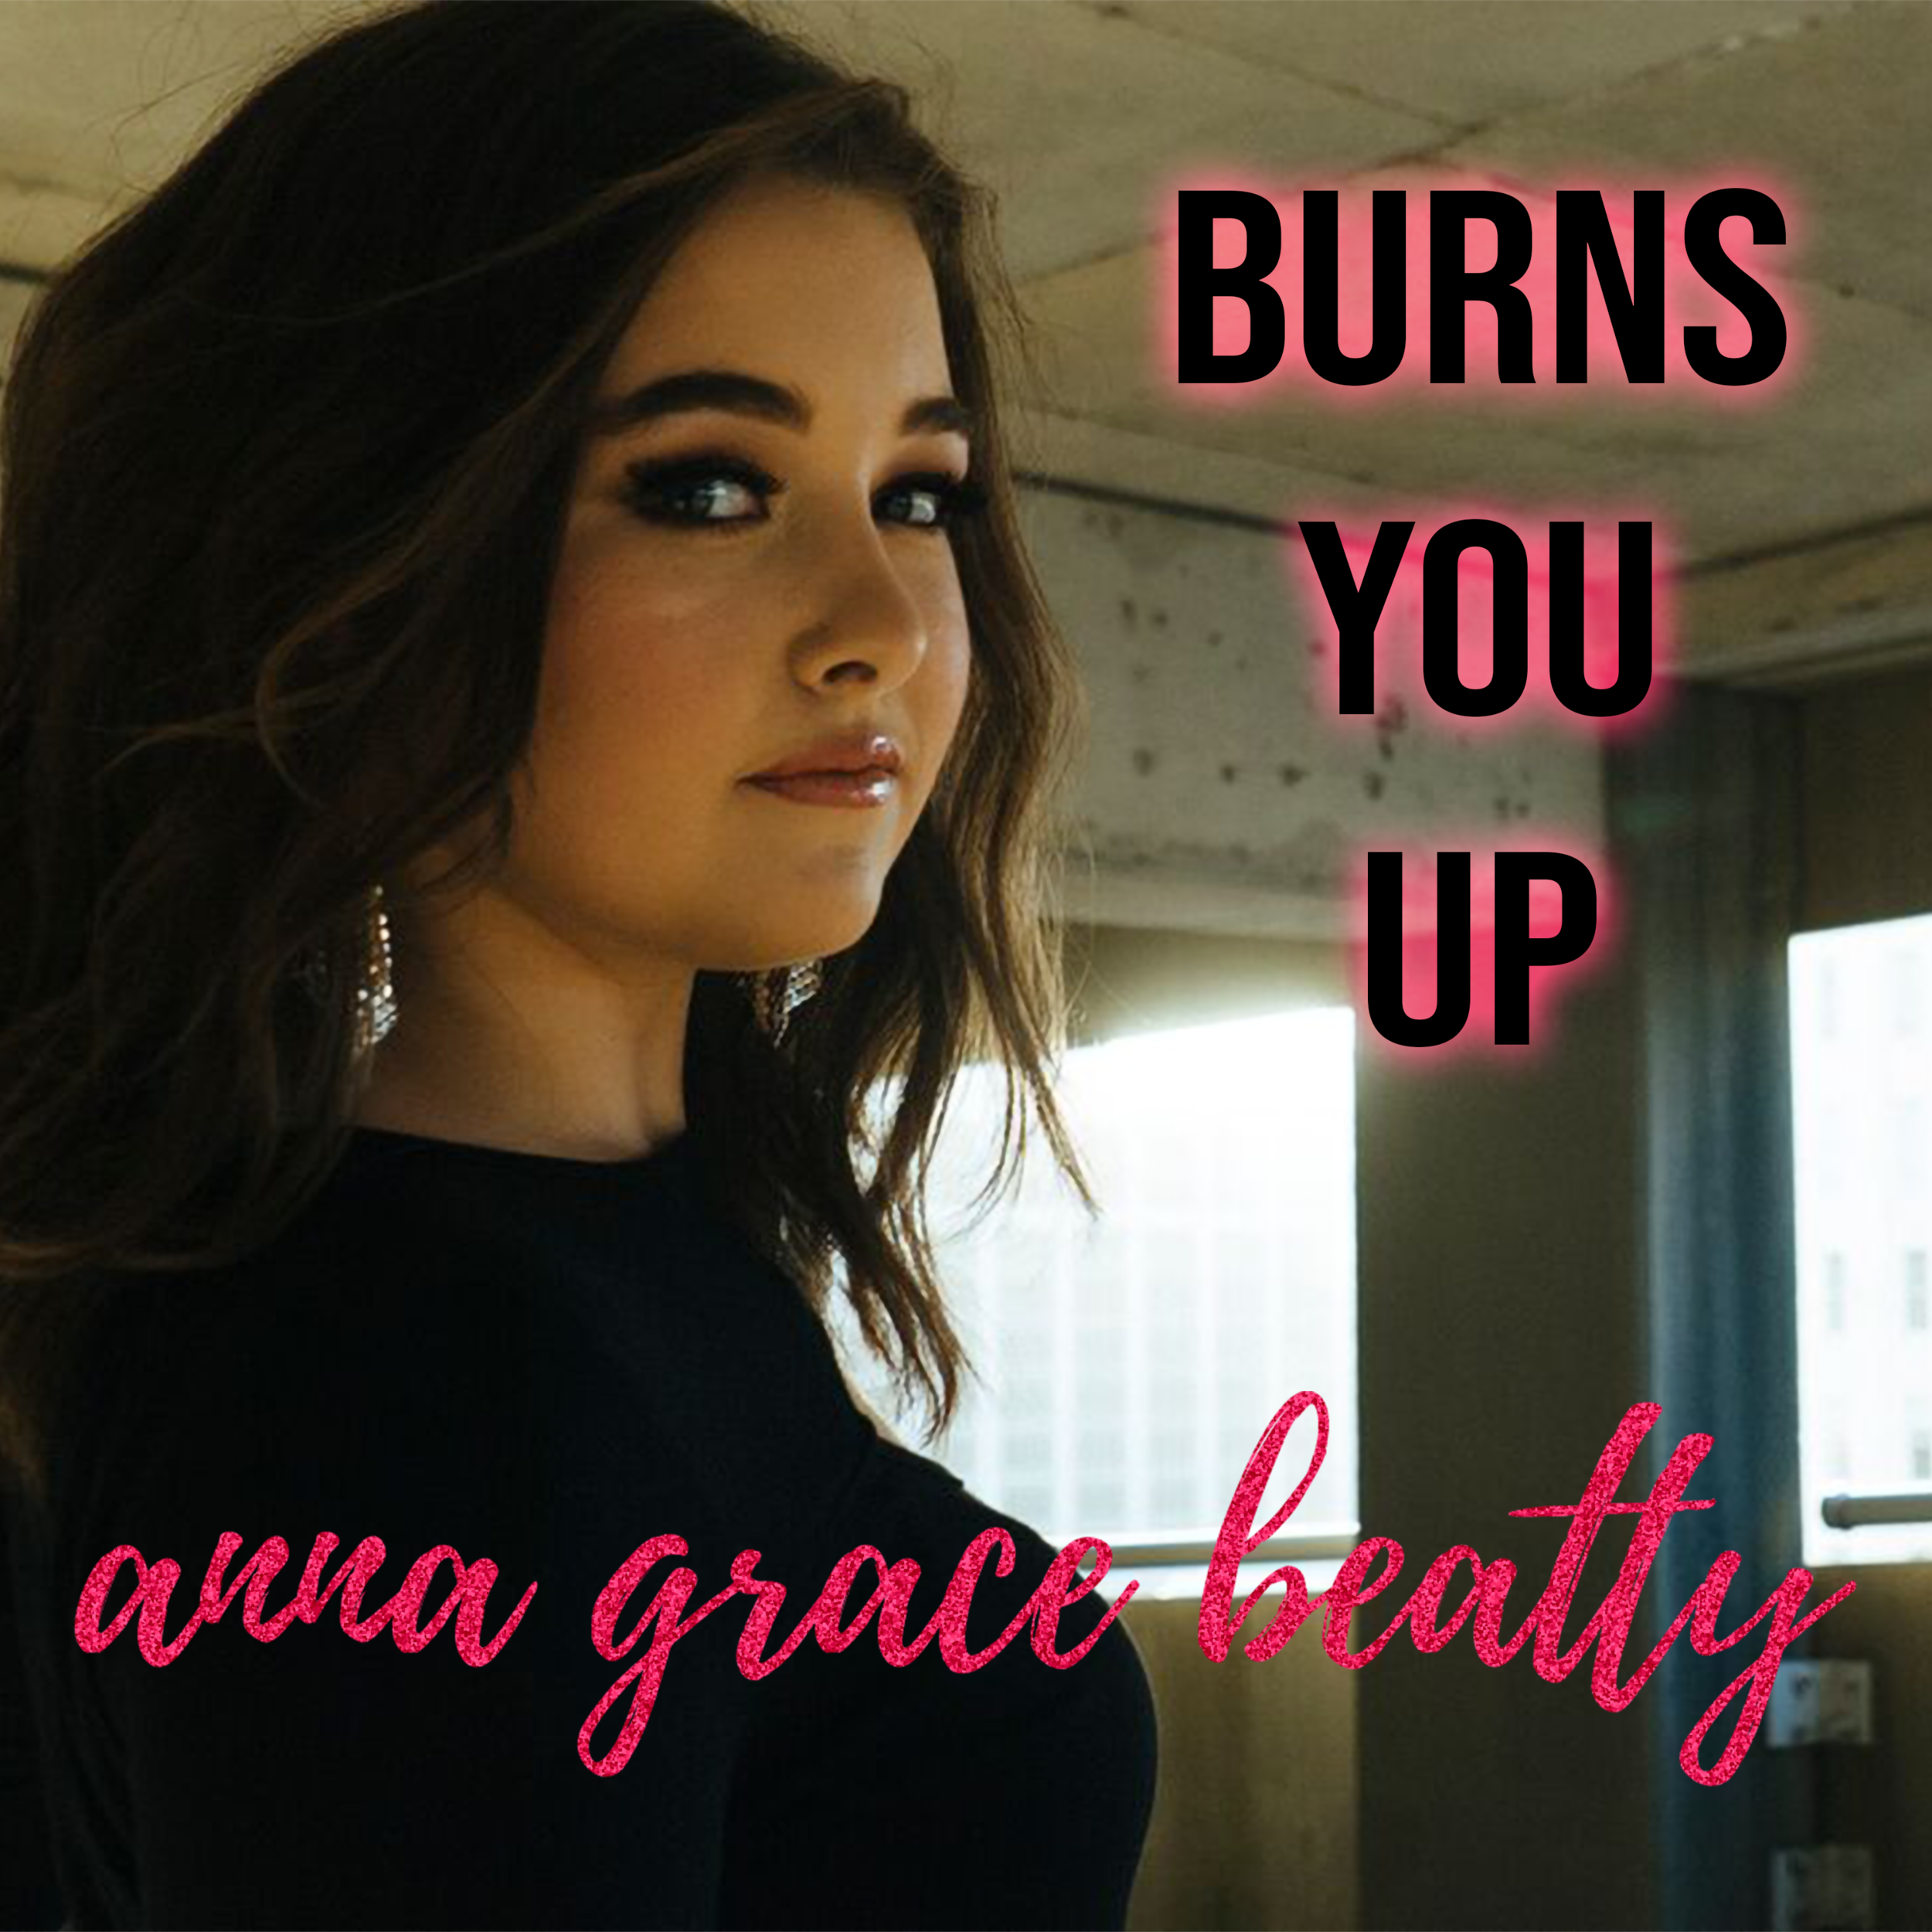 Burns You Up EP Cover 2018 (iTunes).png